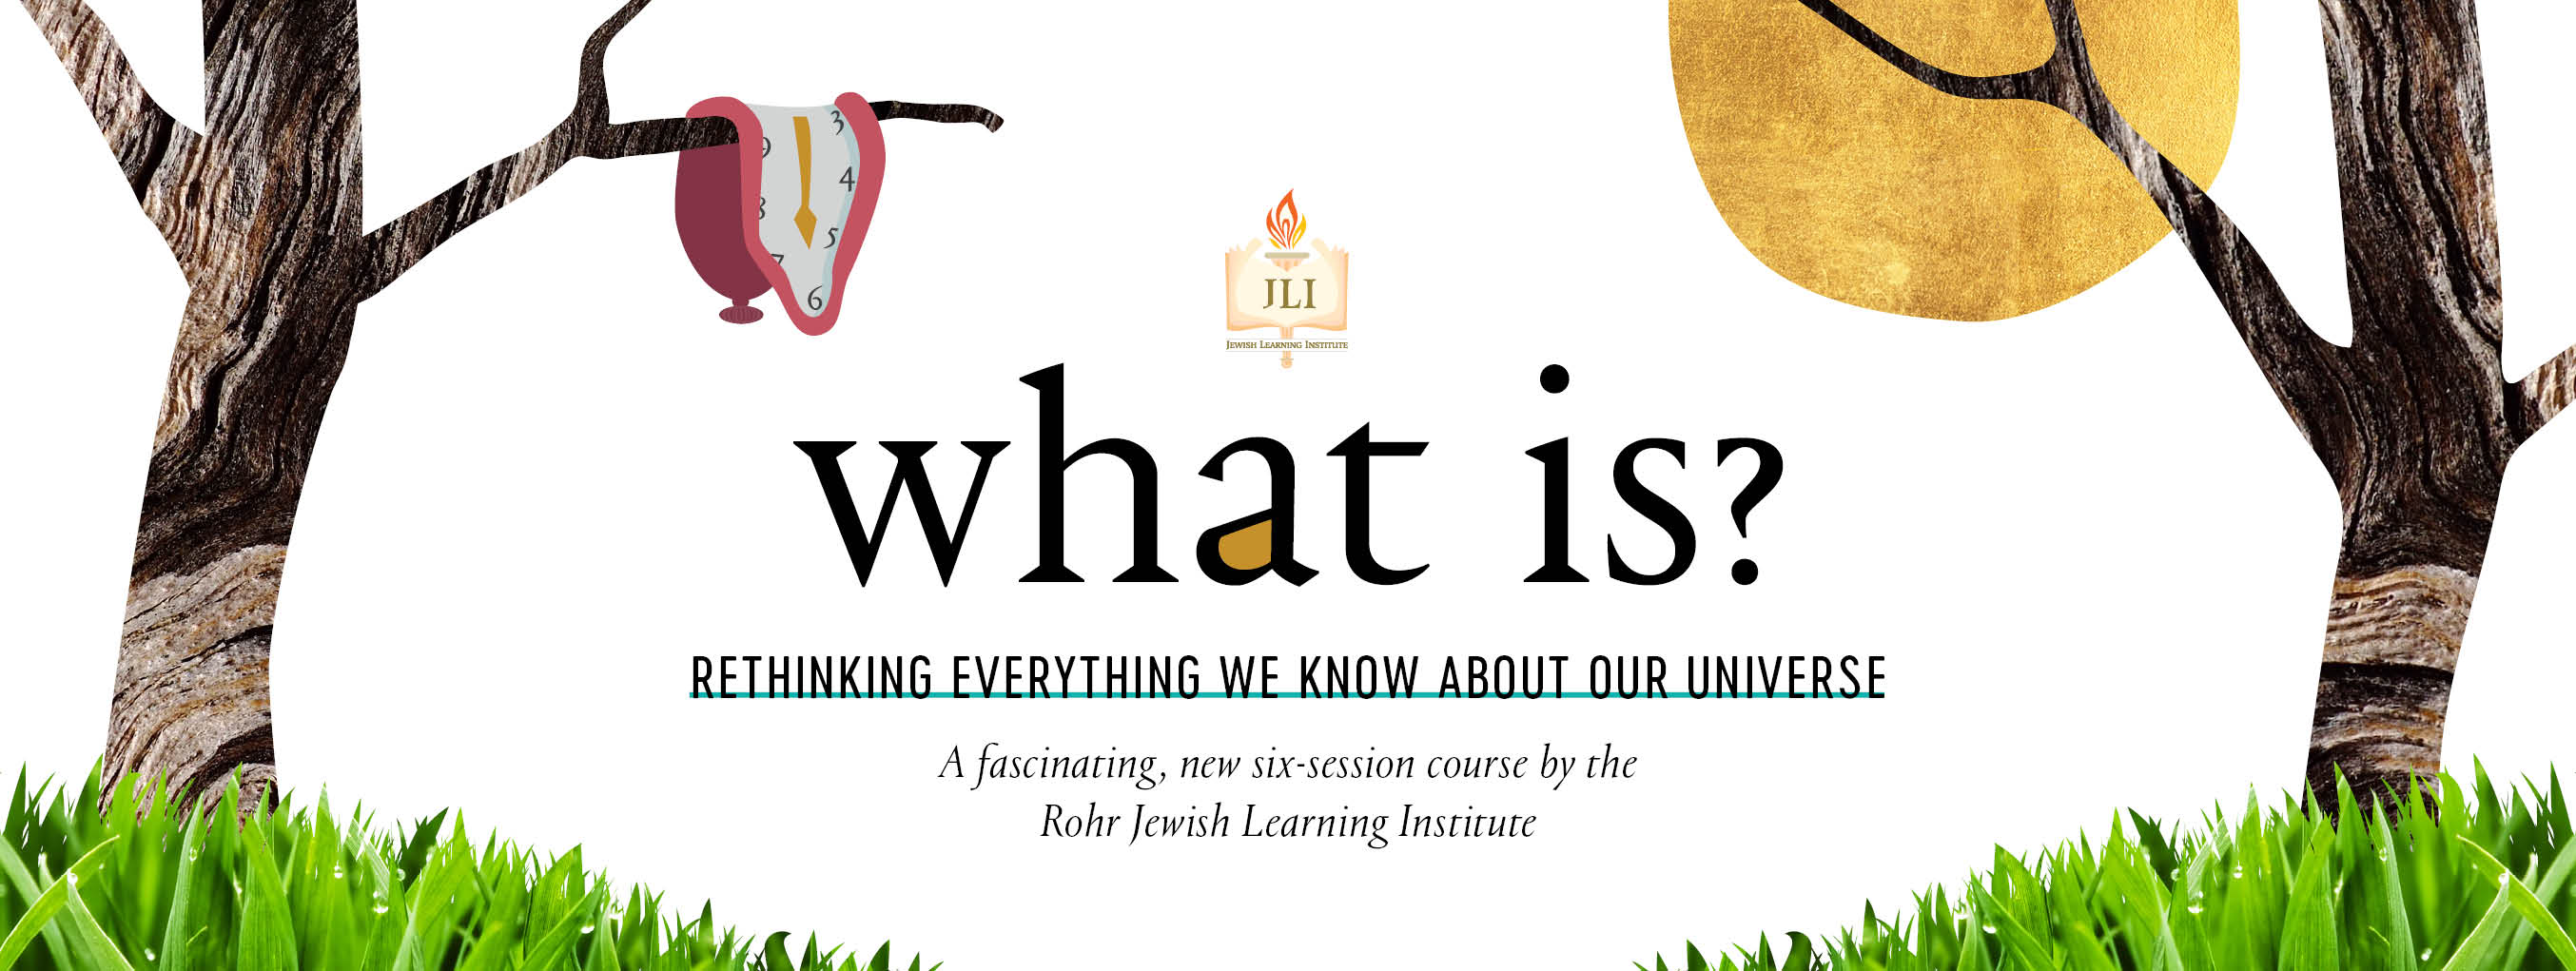 what-is_chabad_650x245px-b.jpg